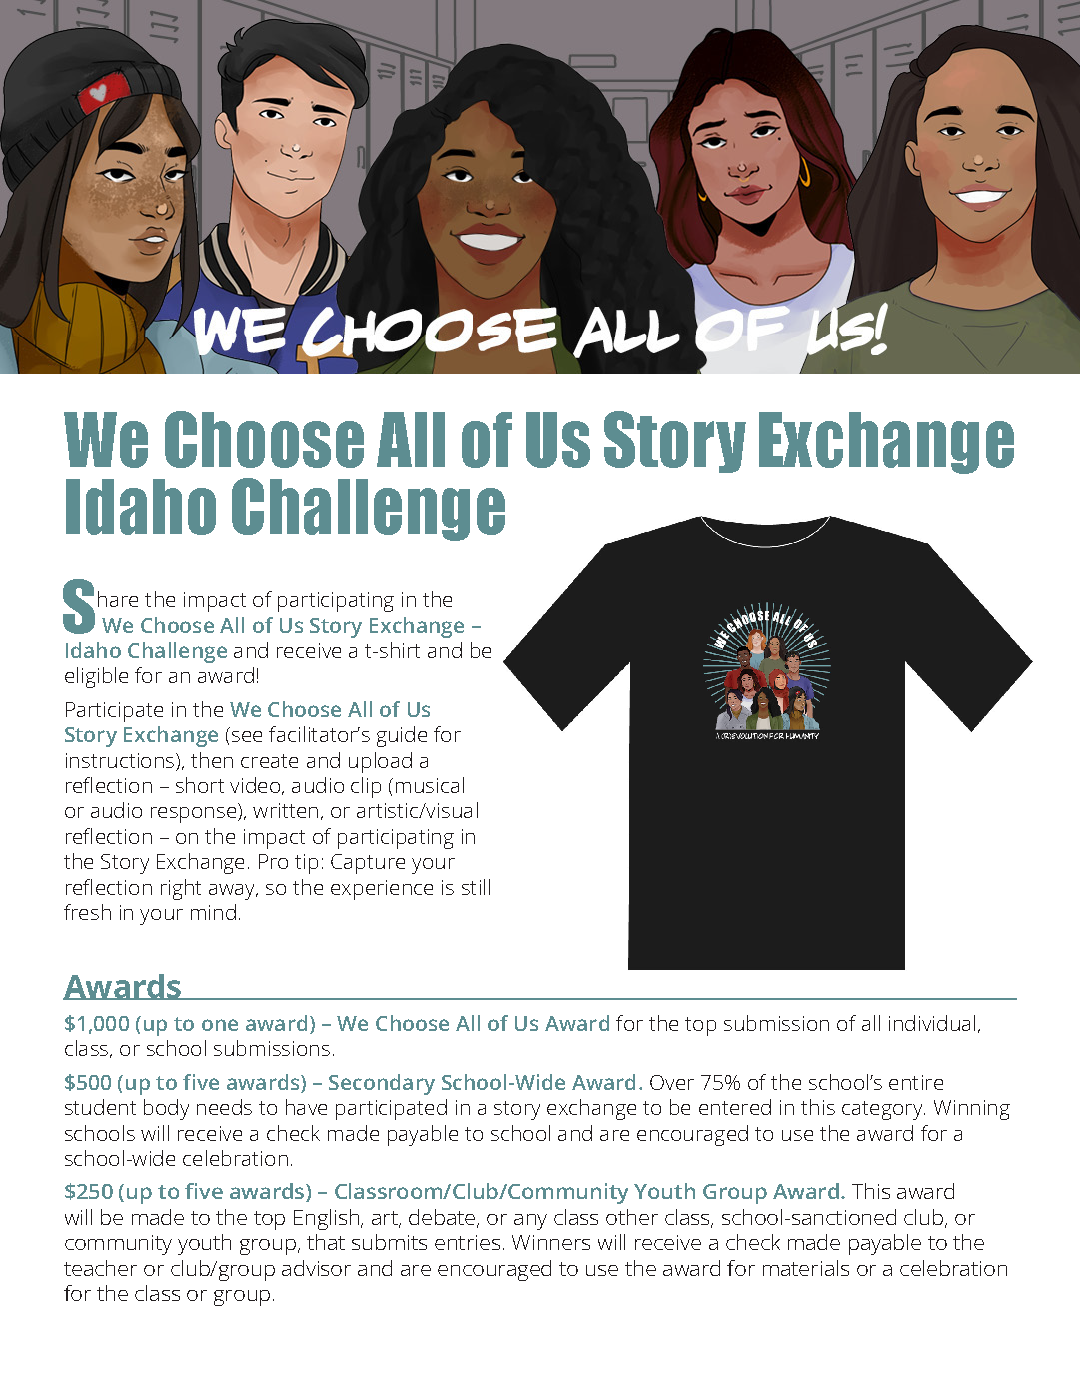 Story Exchange Idaho Challenge Guidelines and Rules